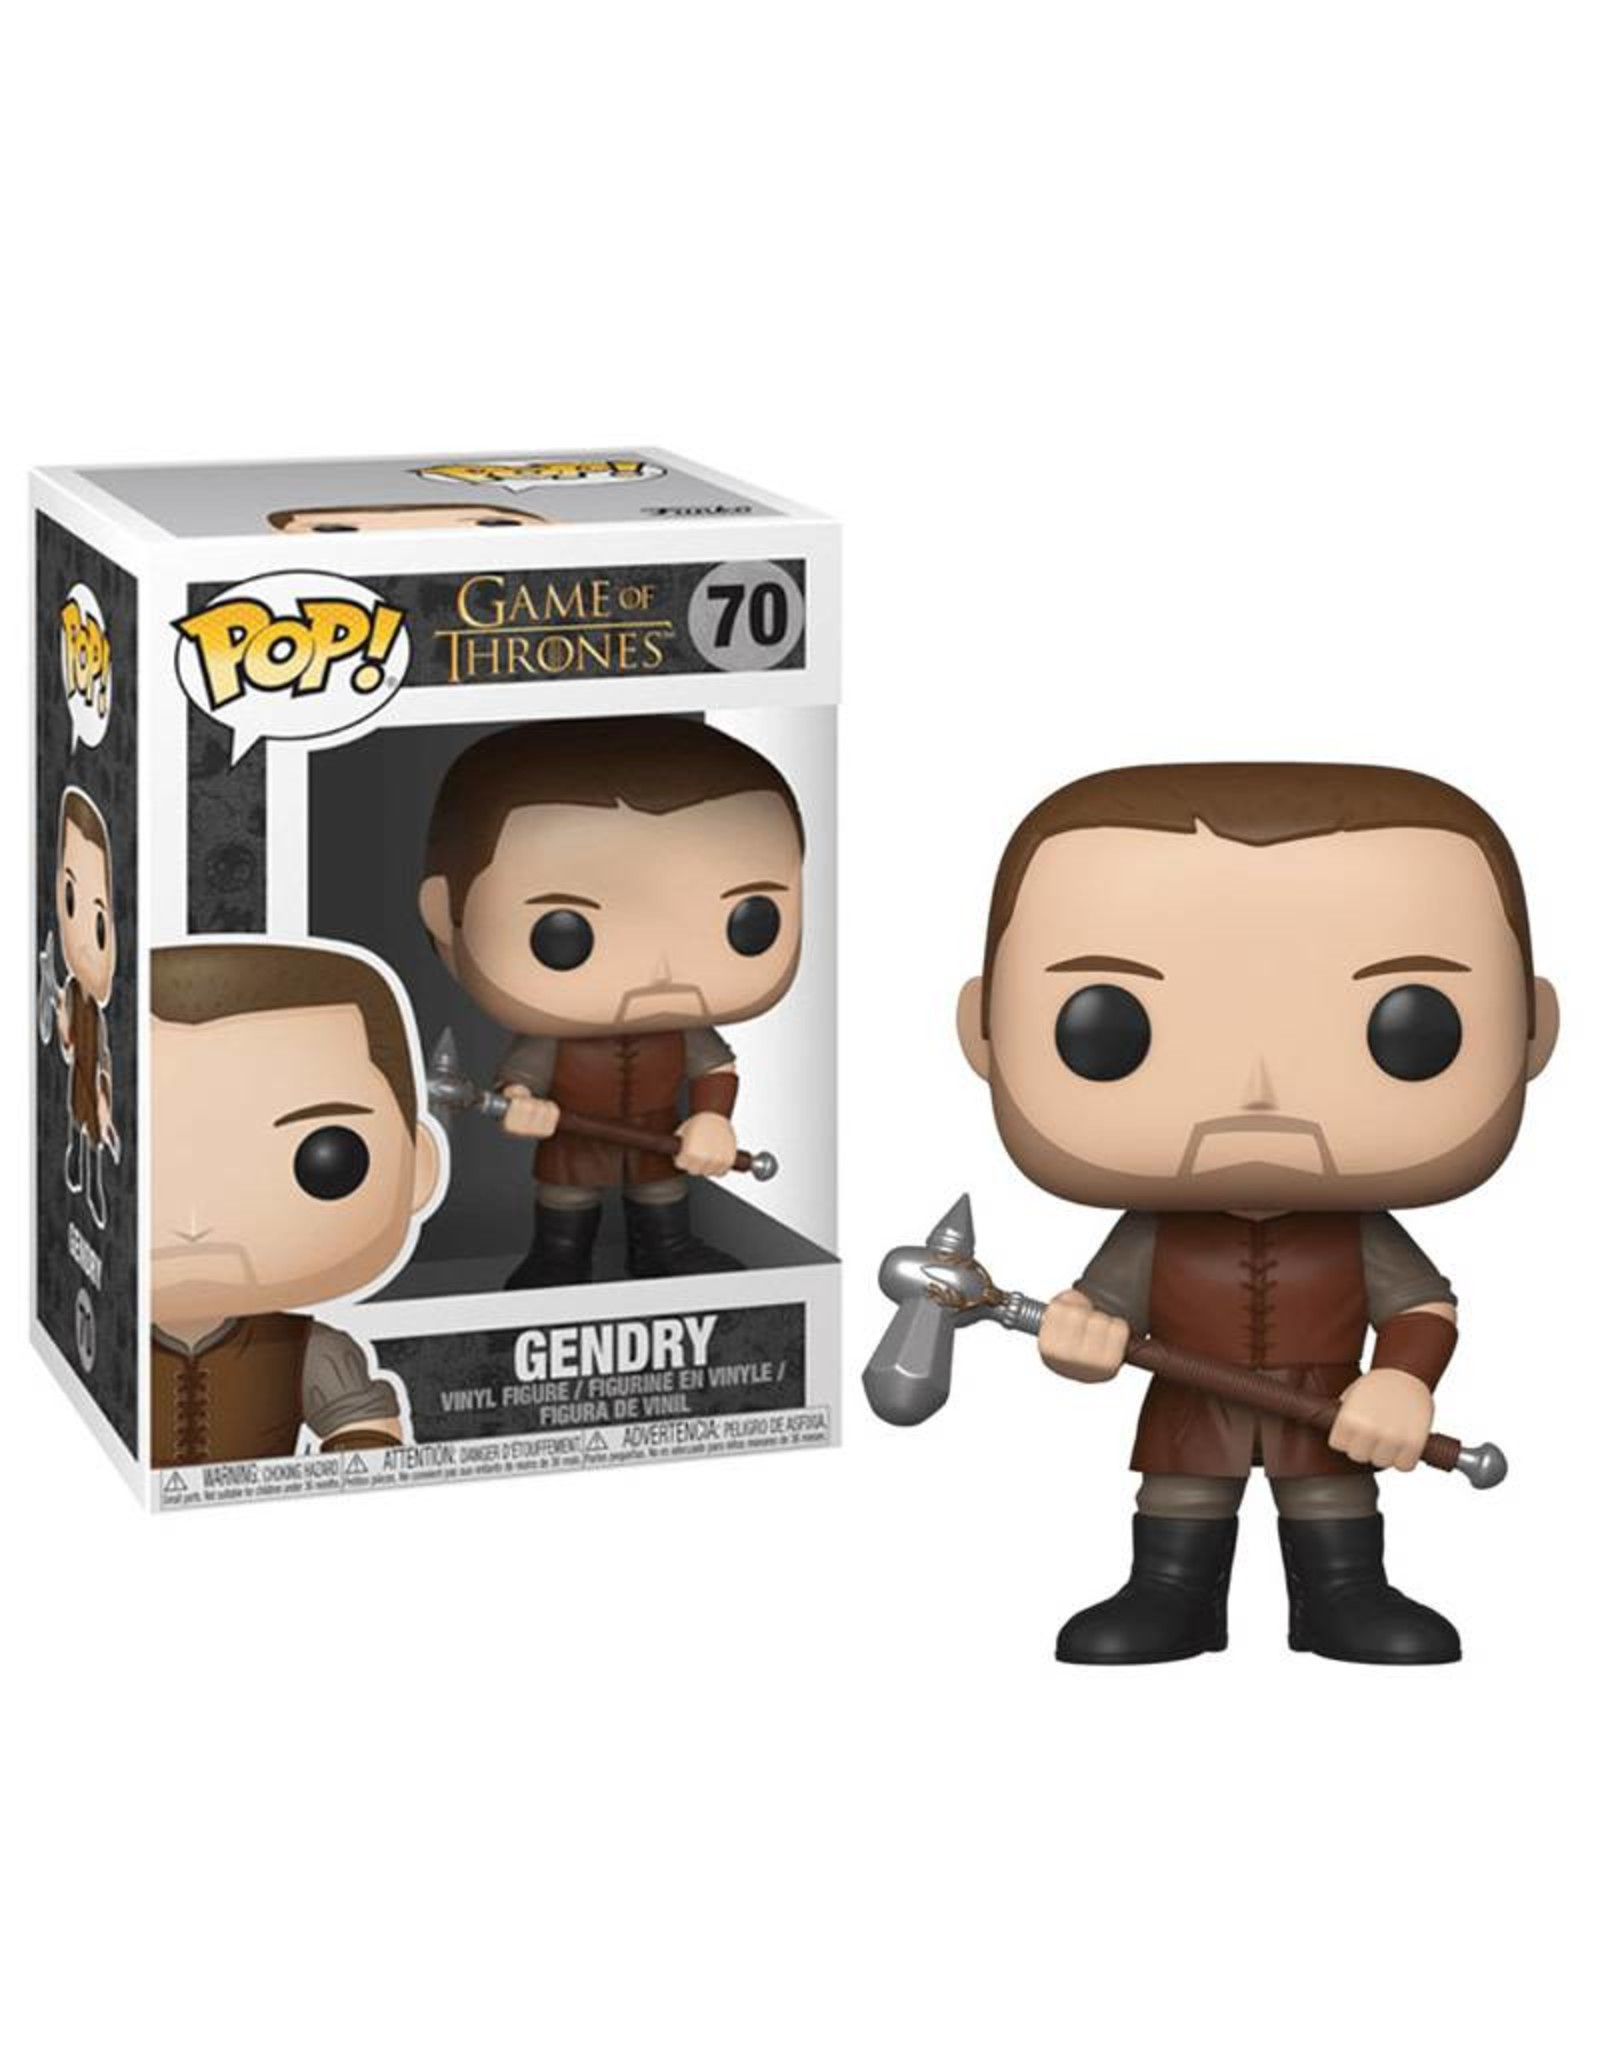 Game of thrones Game of Thrones Gendry 70 ( Funko Pop )